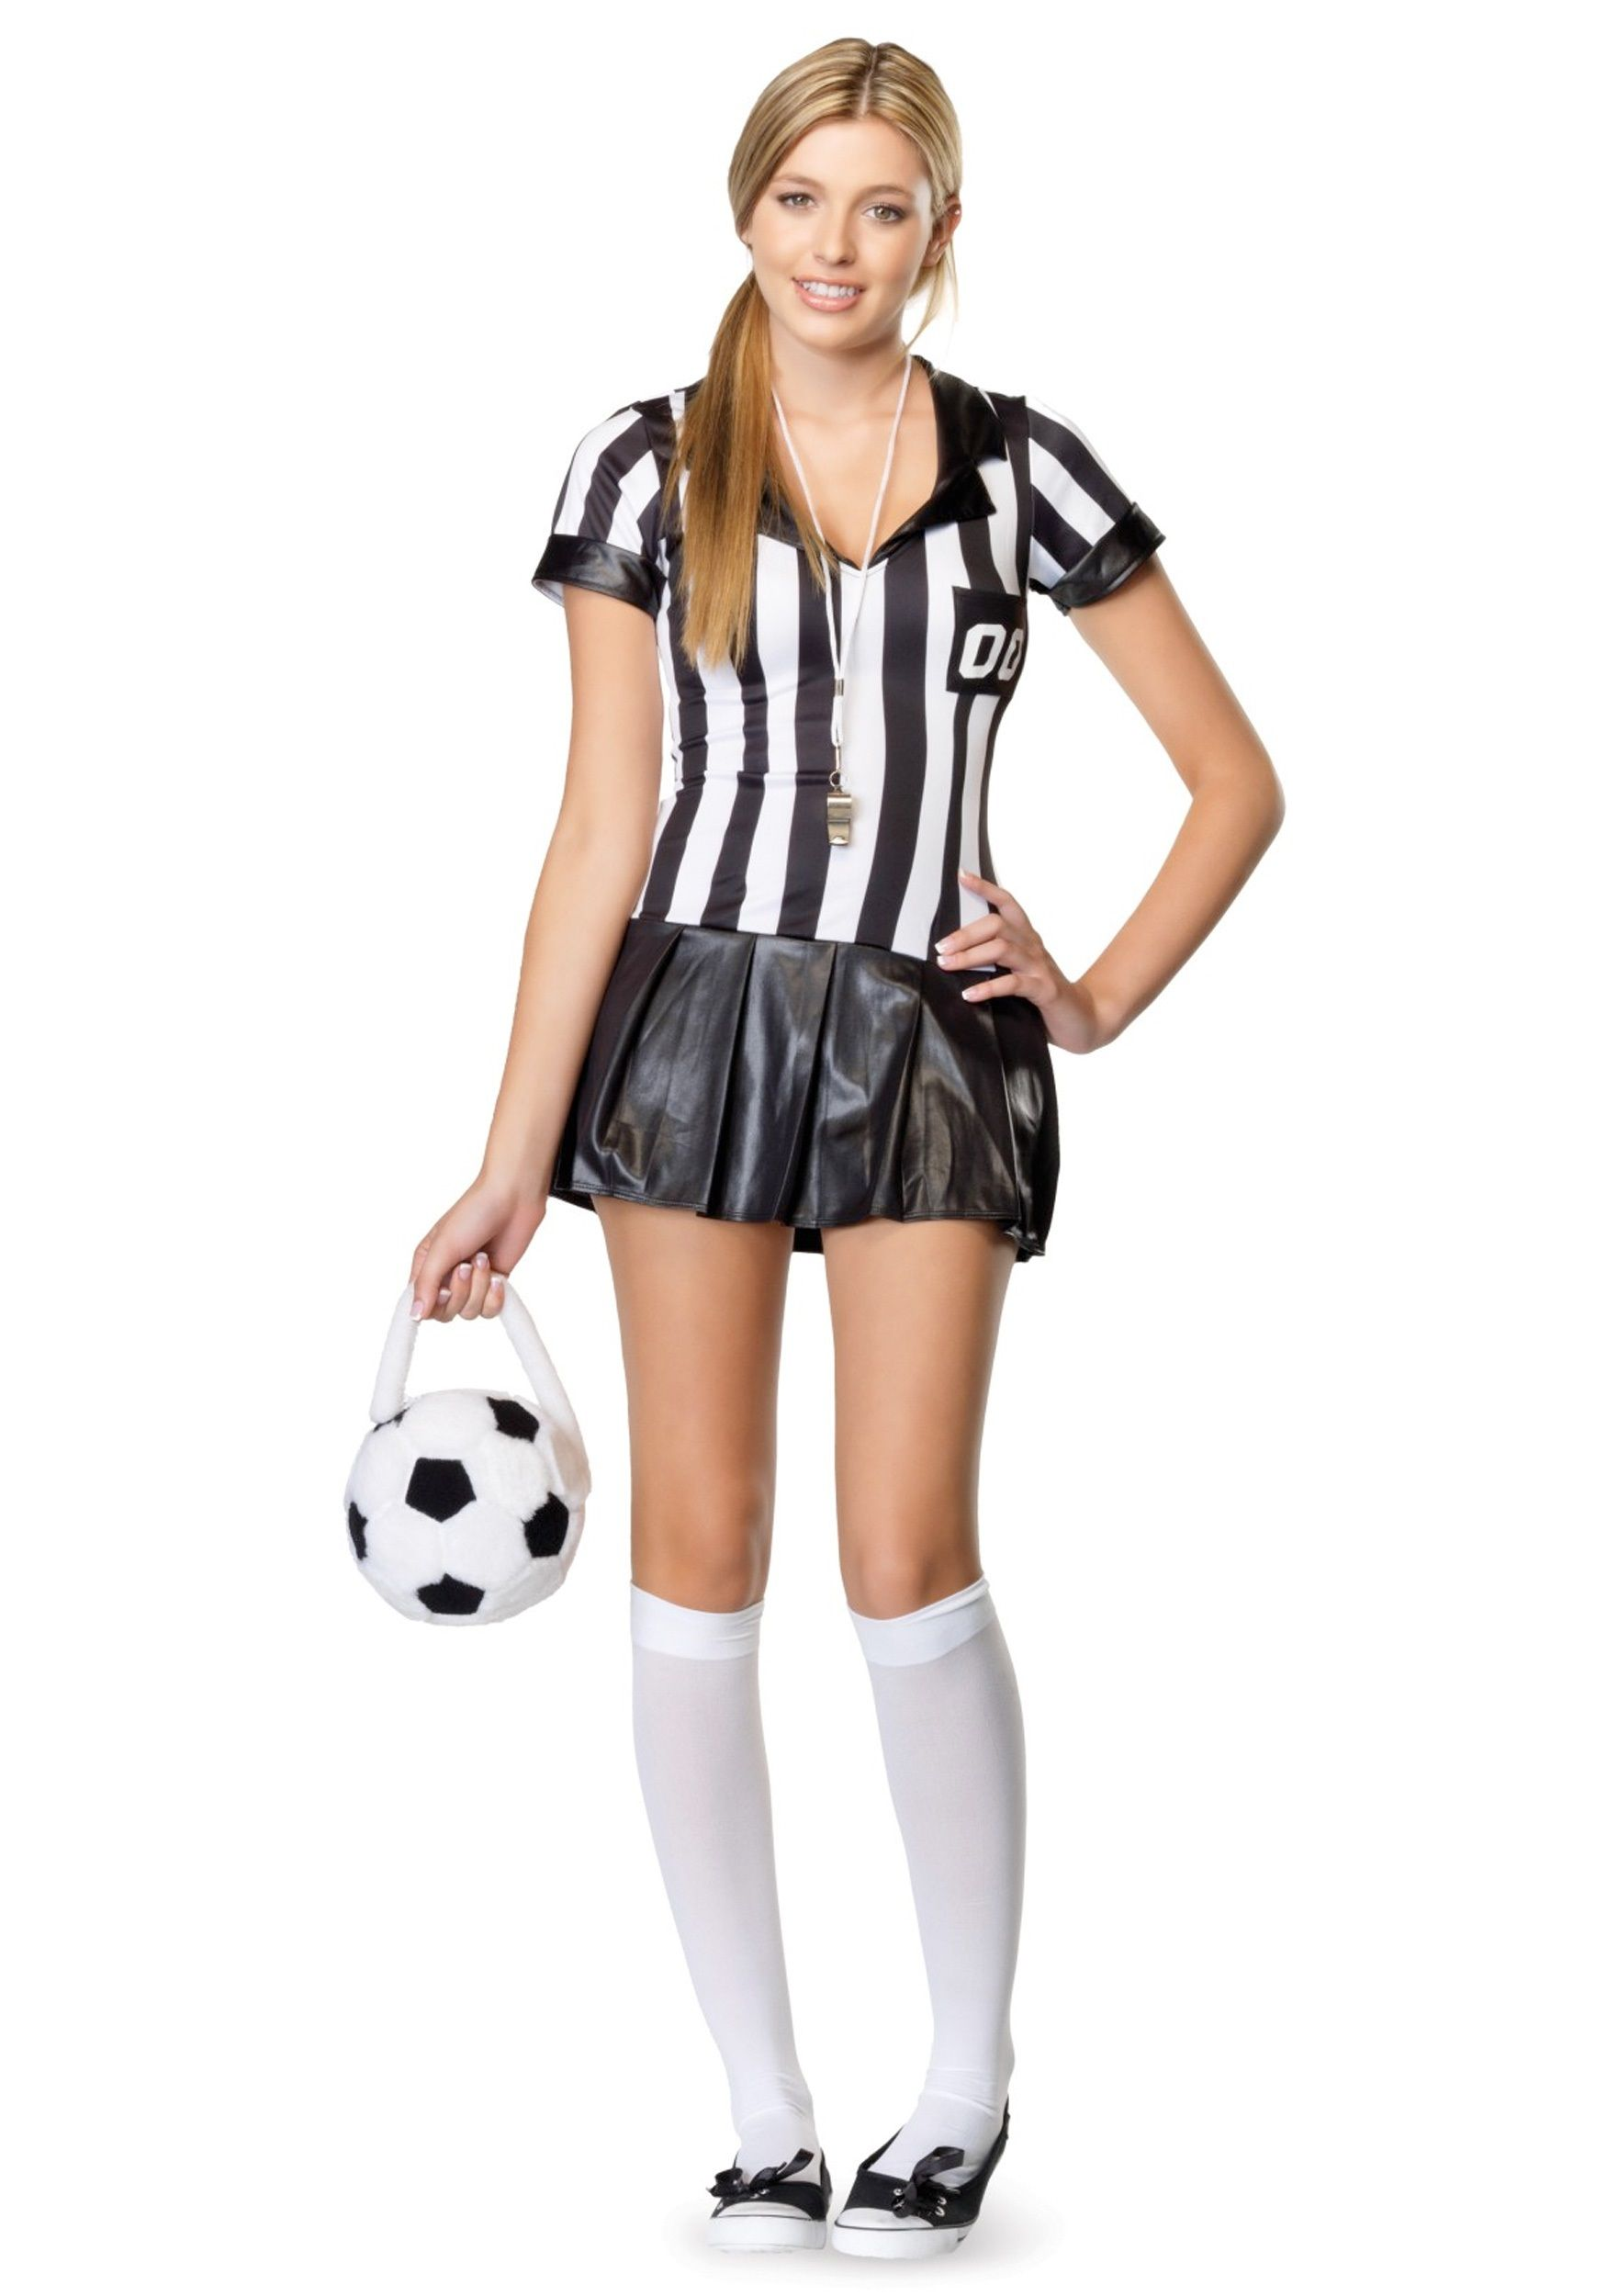 cute+teen+costumes | Home Costume Ideas Sports Costumes Referee ...